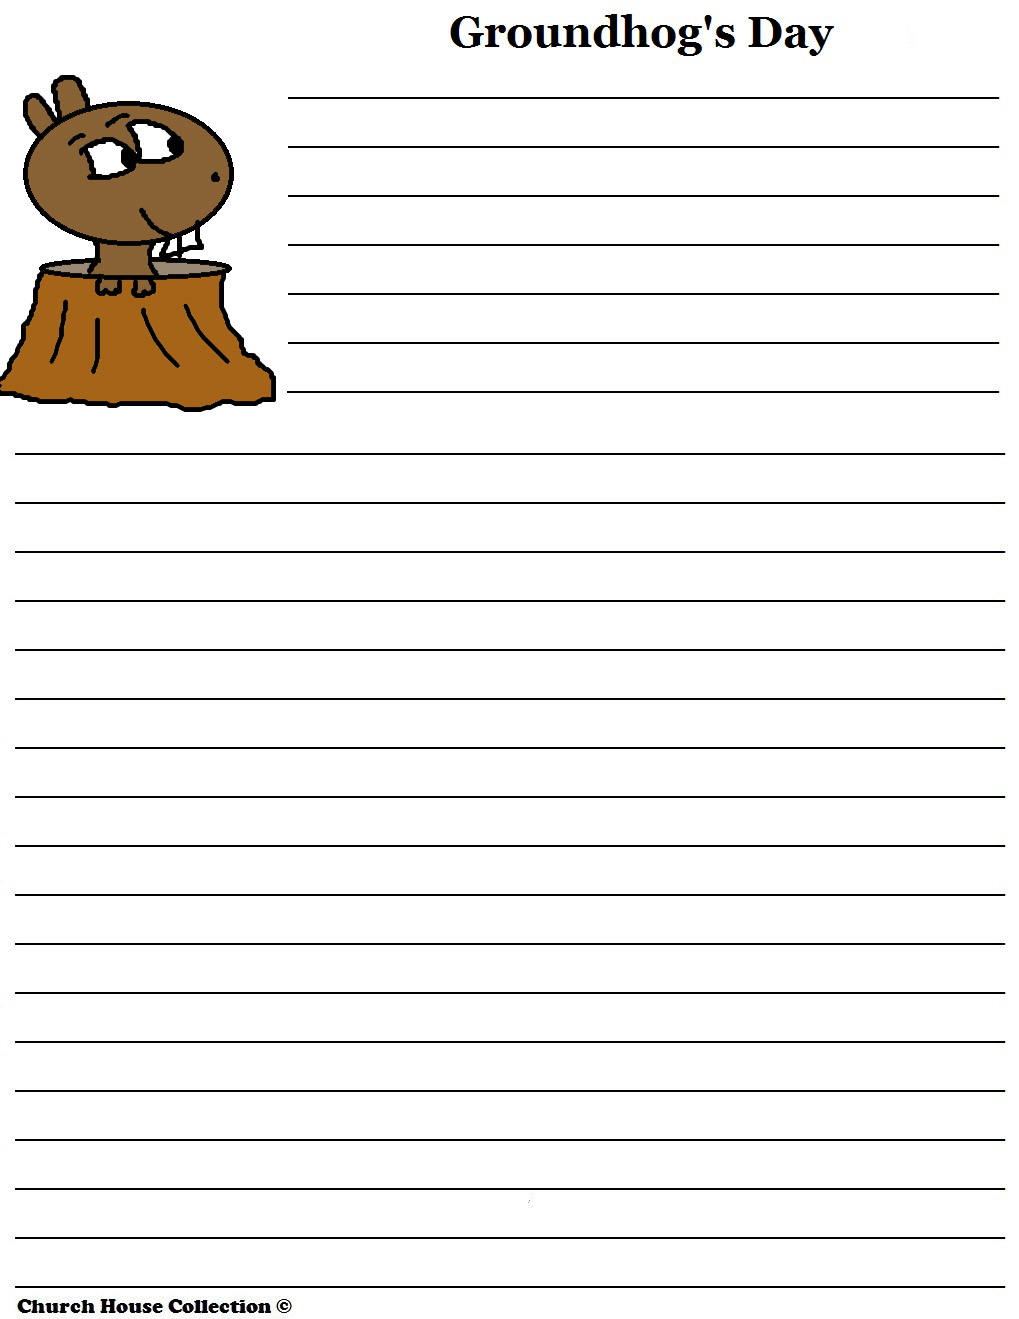 groundhog day writing paper for school groundhog day writing paper for school words